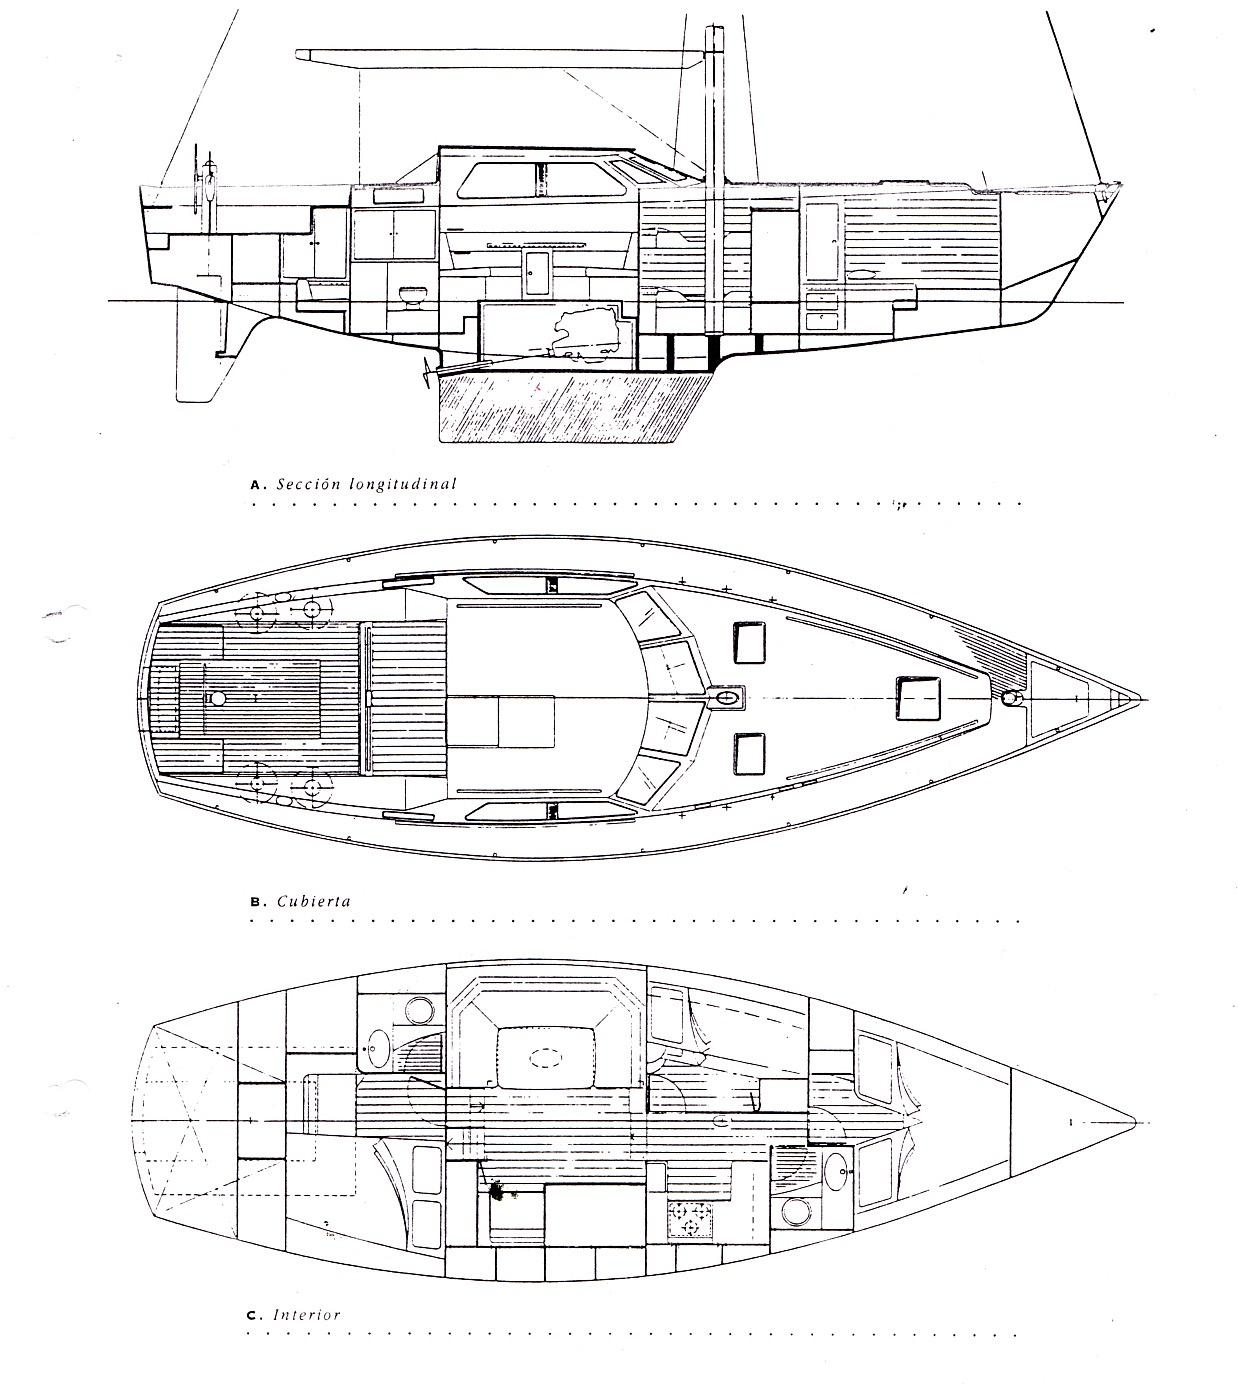 hight resolution of spi lifeboat diagram wiring diagram blogs 1991 north wind 41 sail boat for sale www yachtworld